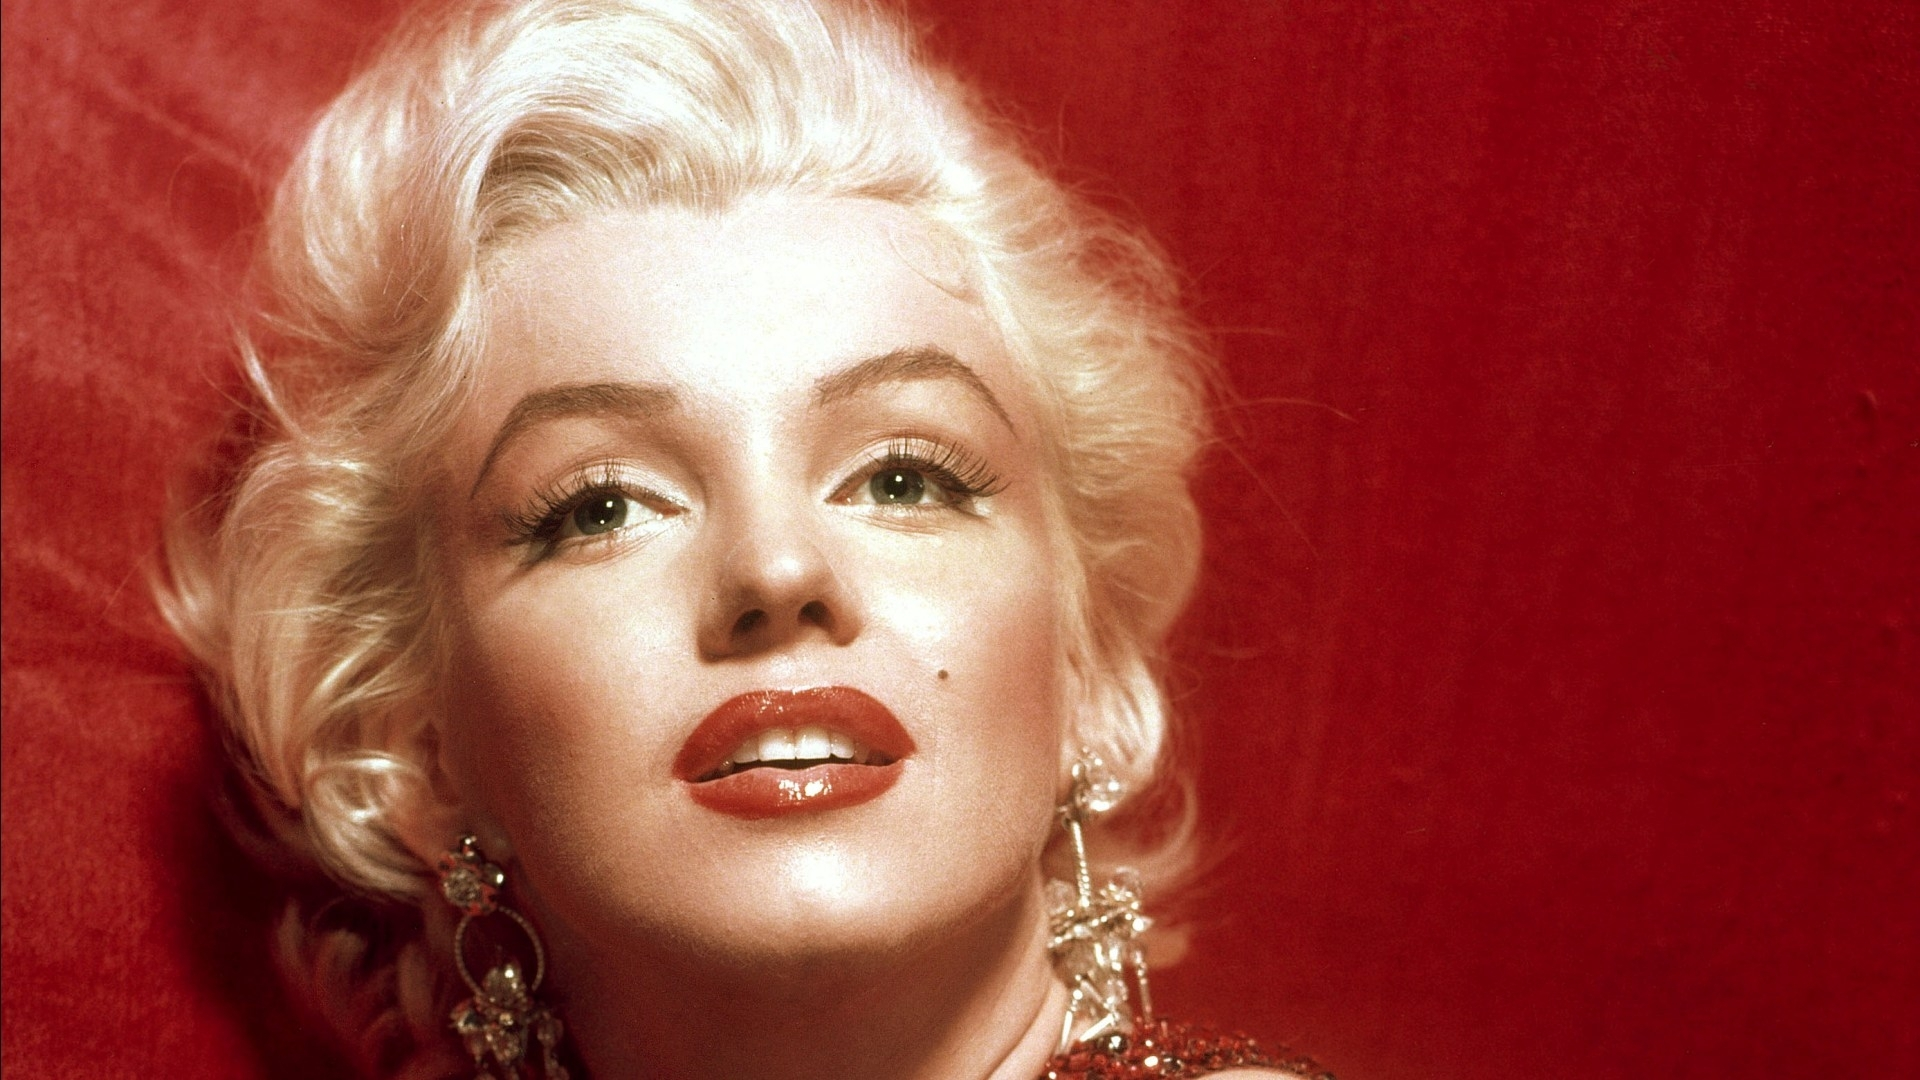 Marilyn monroe hd wallpapers pictures images marilyn monroe hd full hd wallpaper voltagebd Gallery